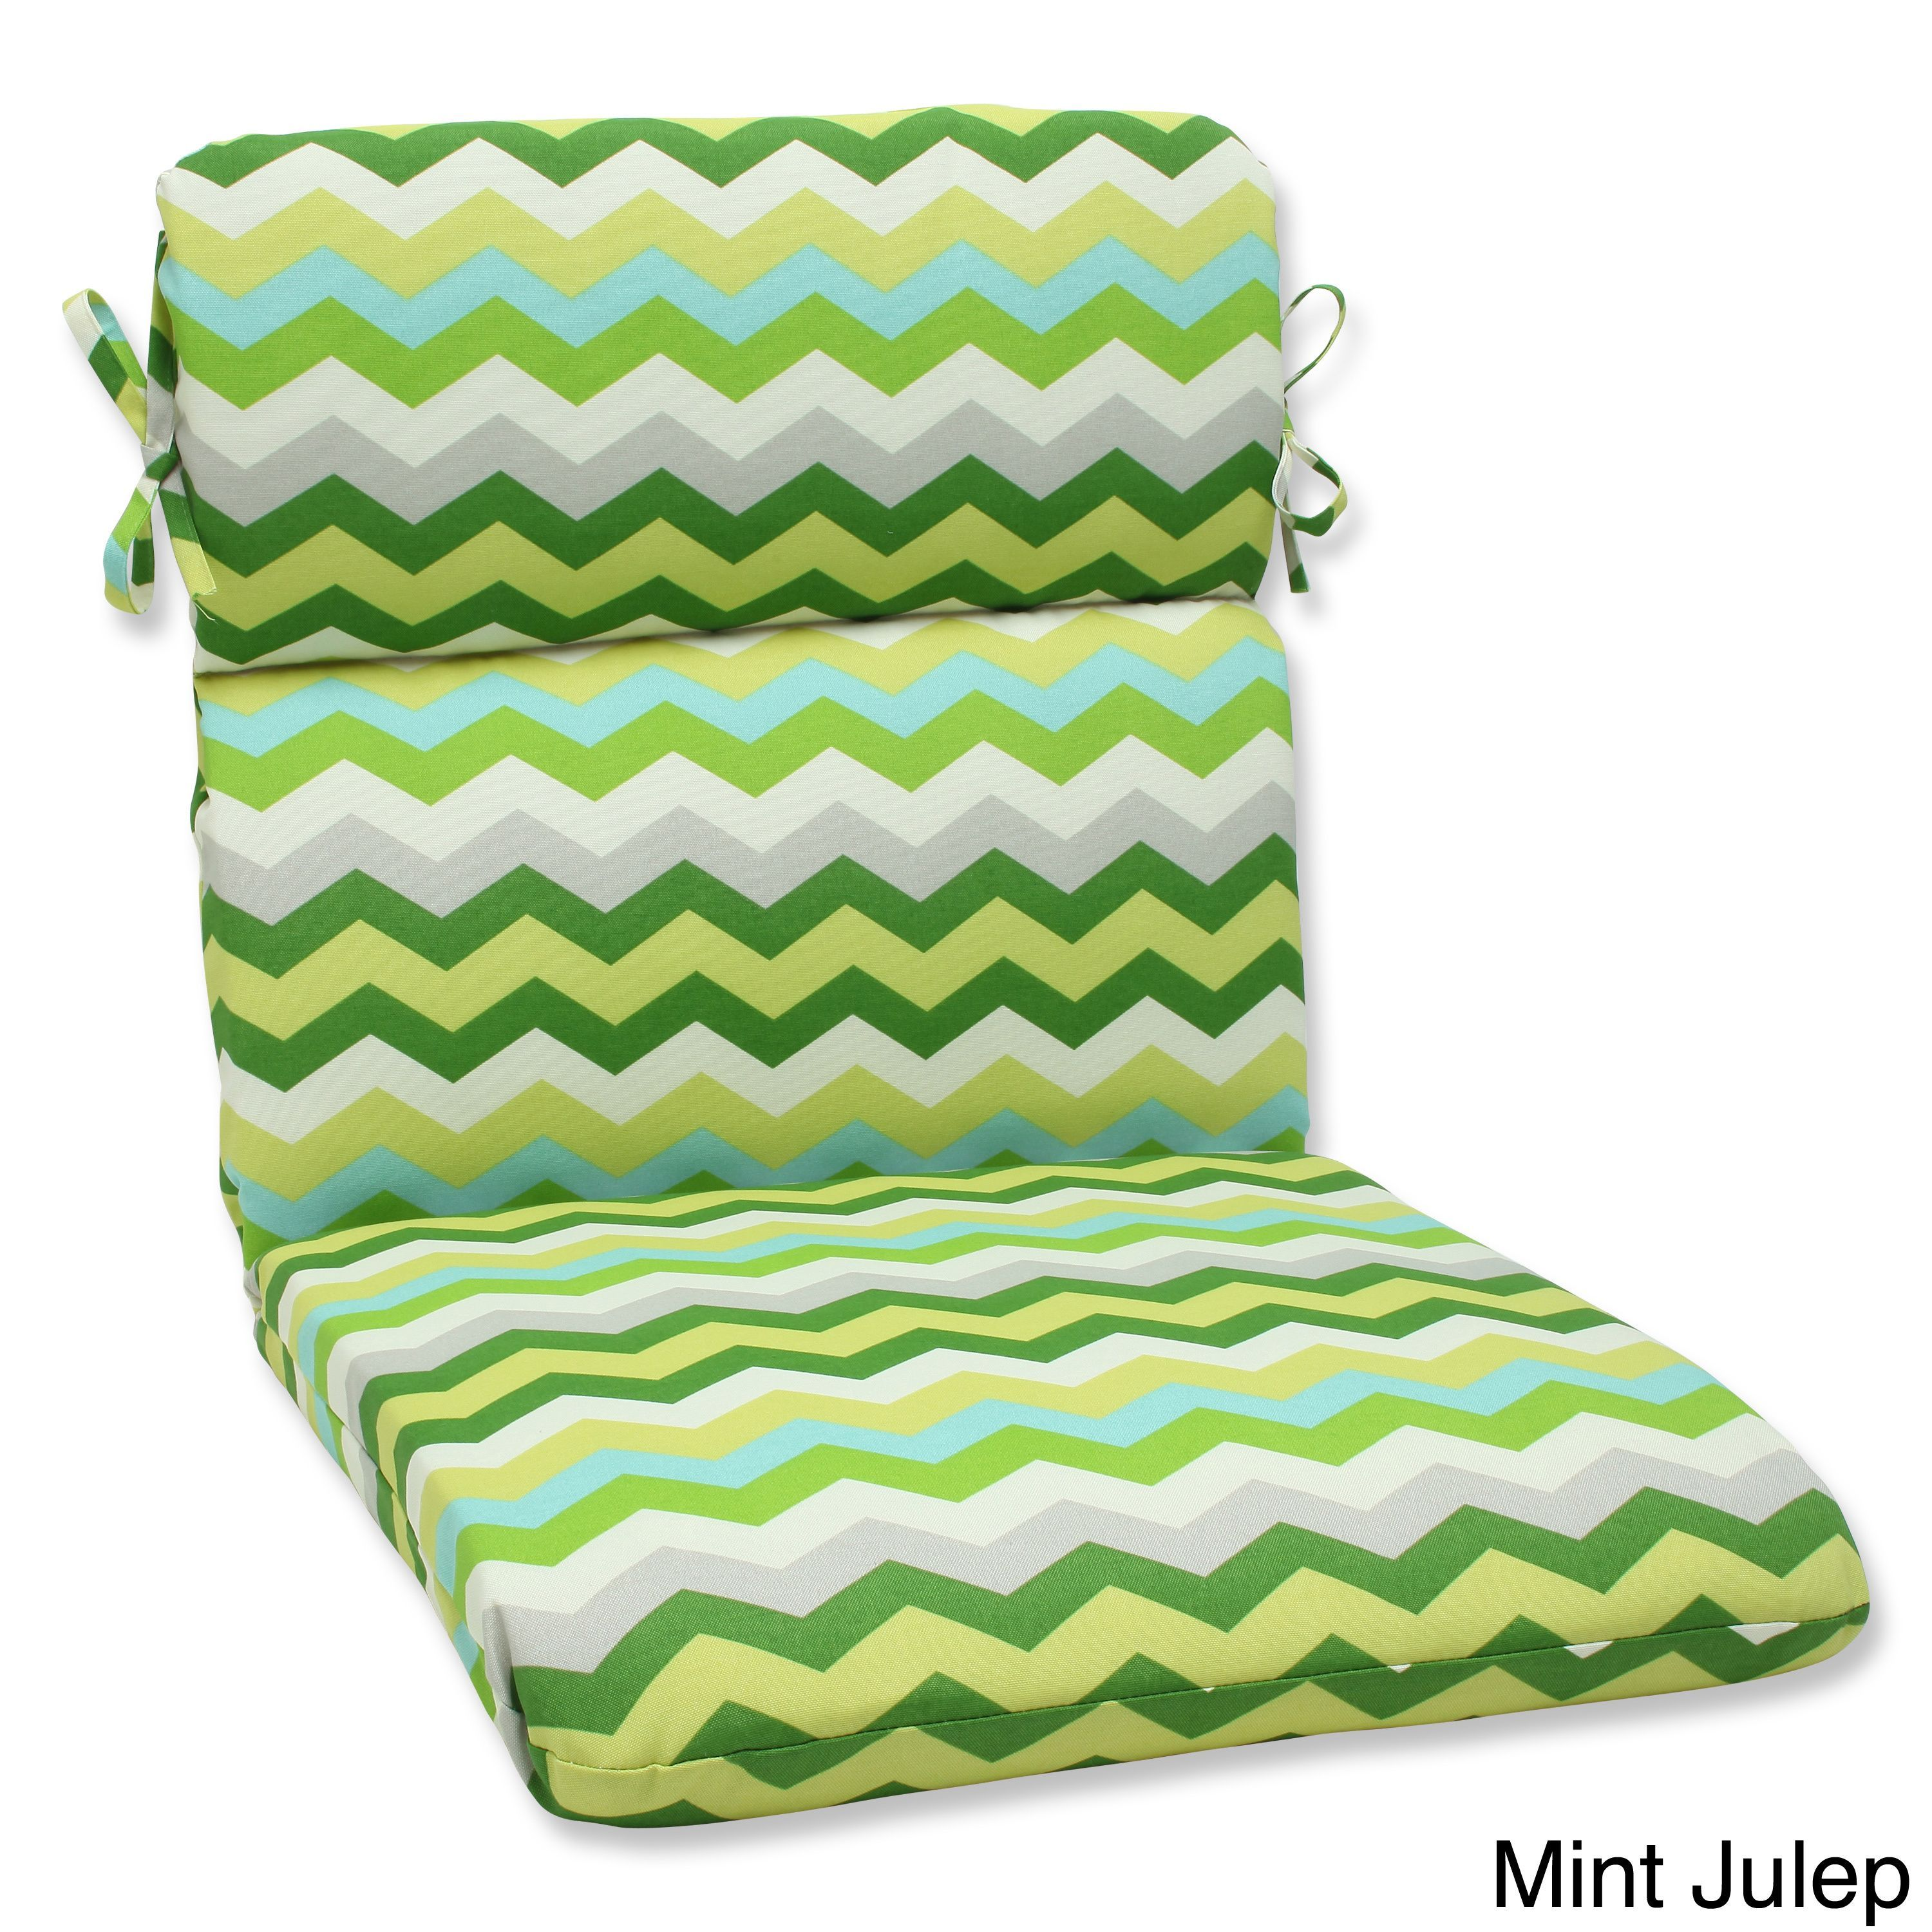 Pillow Perfect Panama Wave Rounded Corners Chair Outdoor Cushion (Mint Julep), Green (Fabric), Patio Furniture